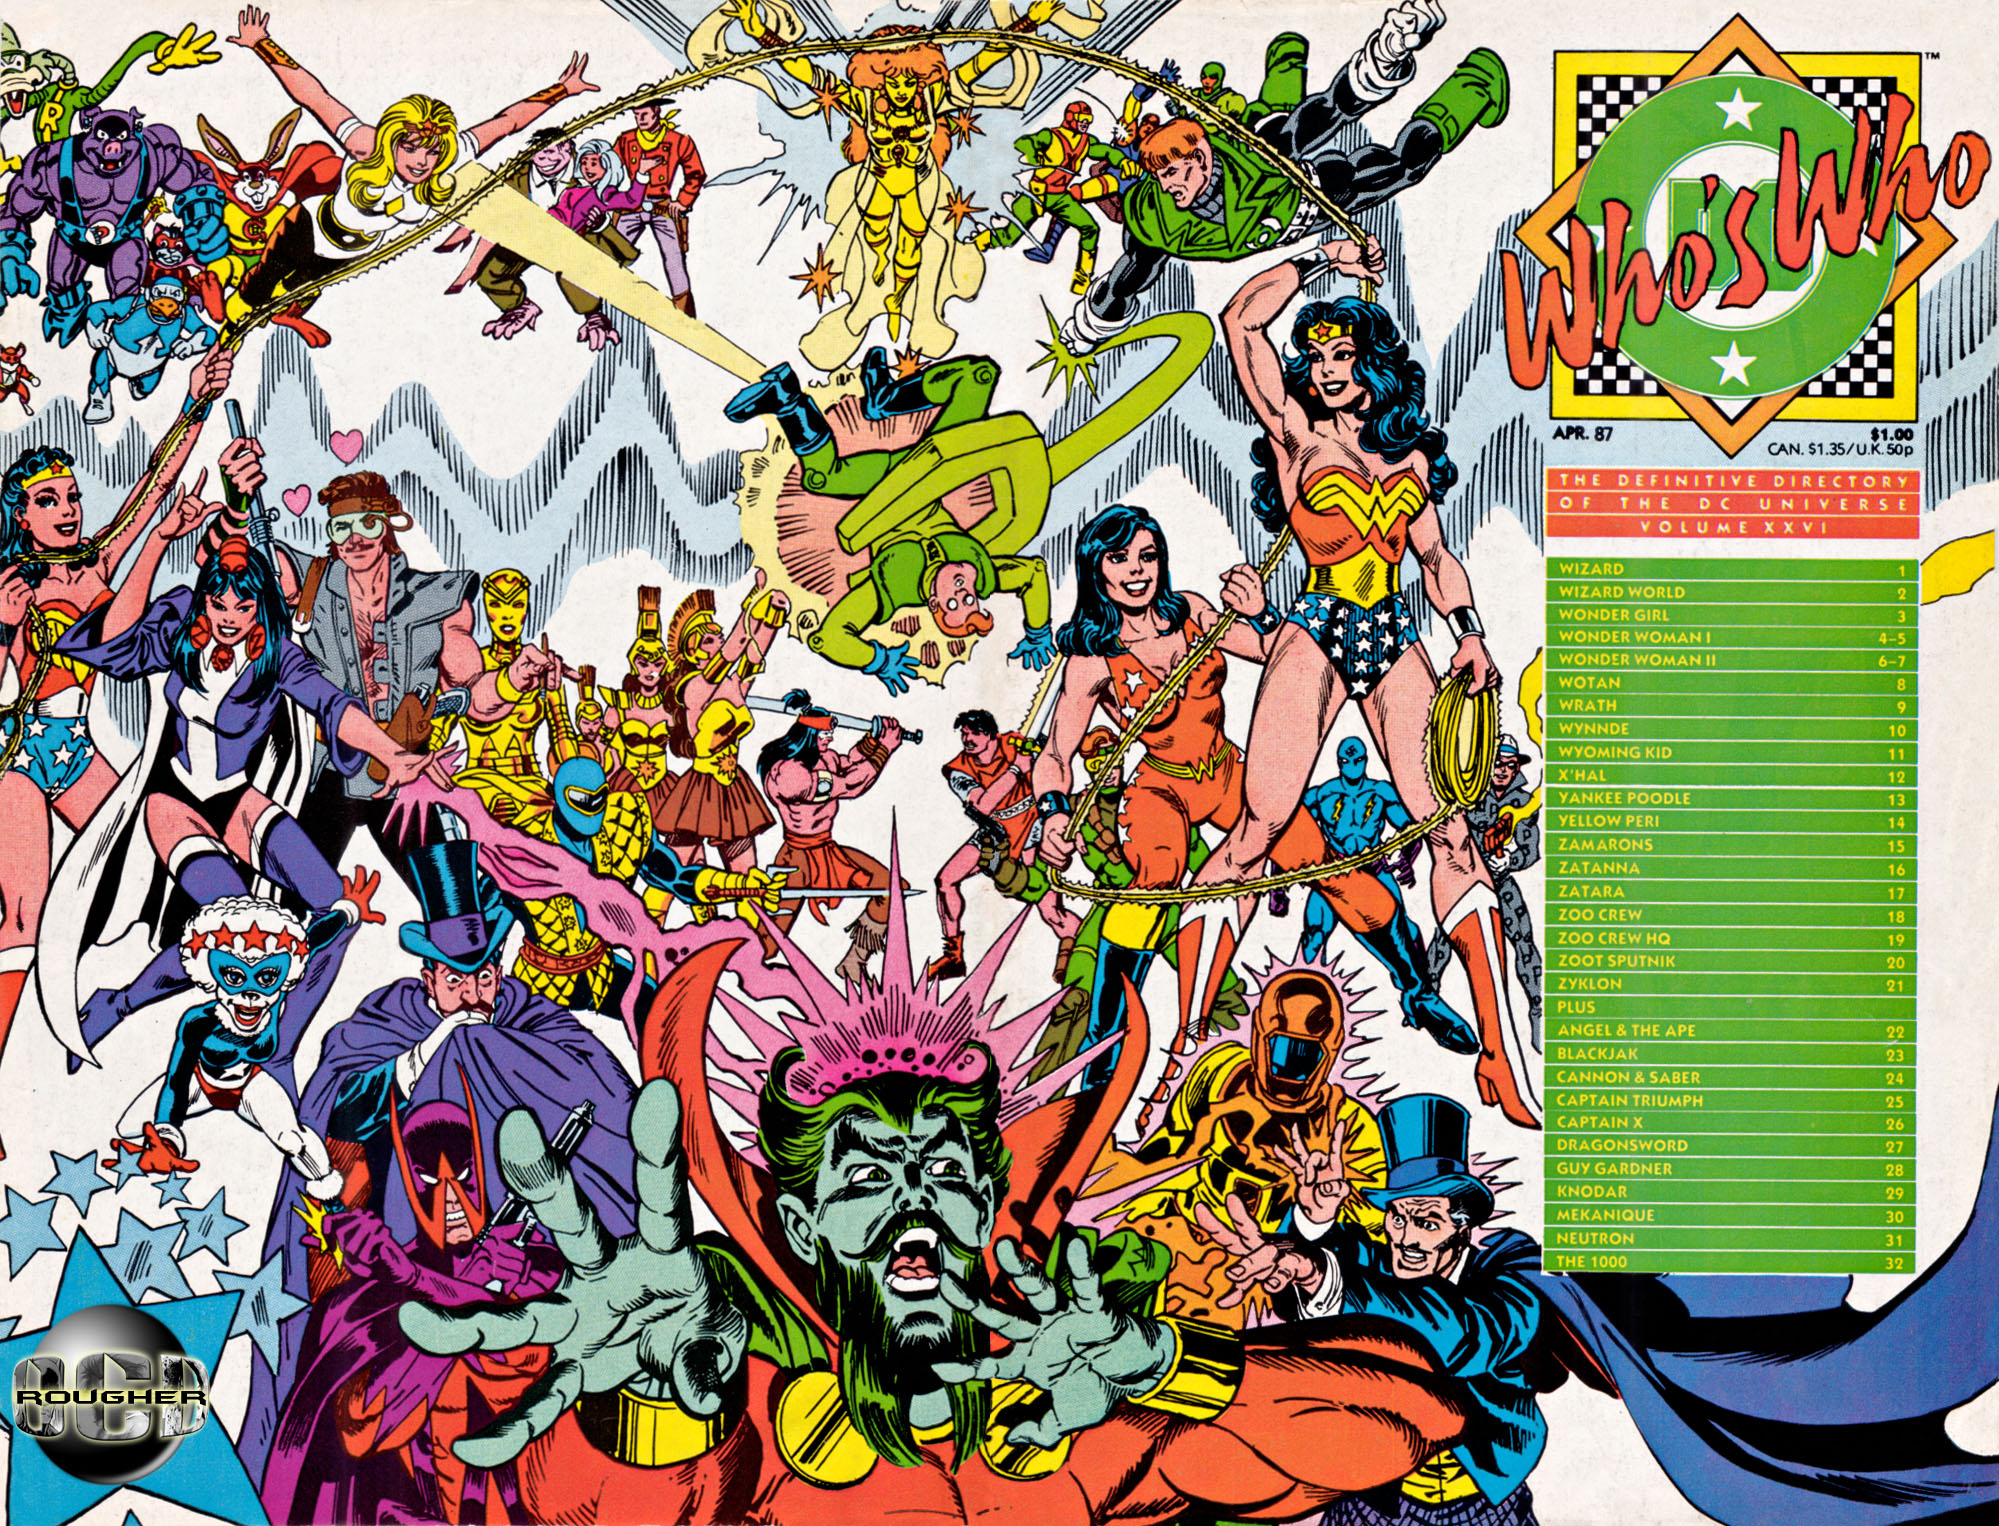 Who's Who The Definitive Directory of the DC Universe volume 26